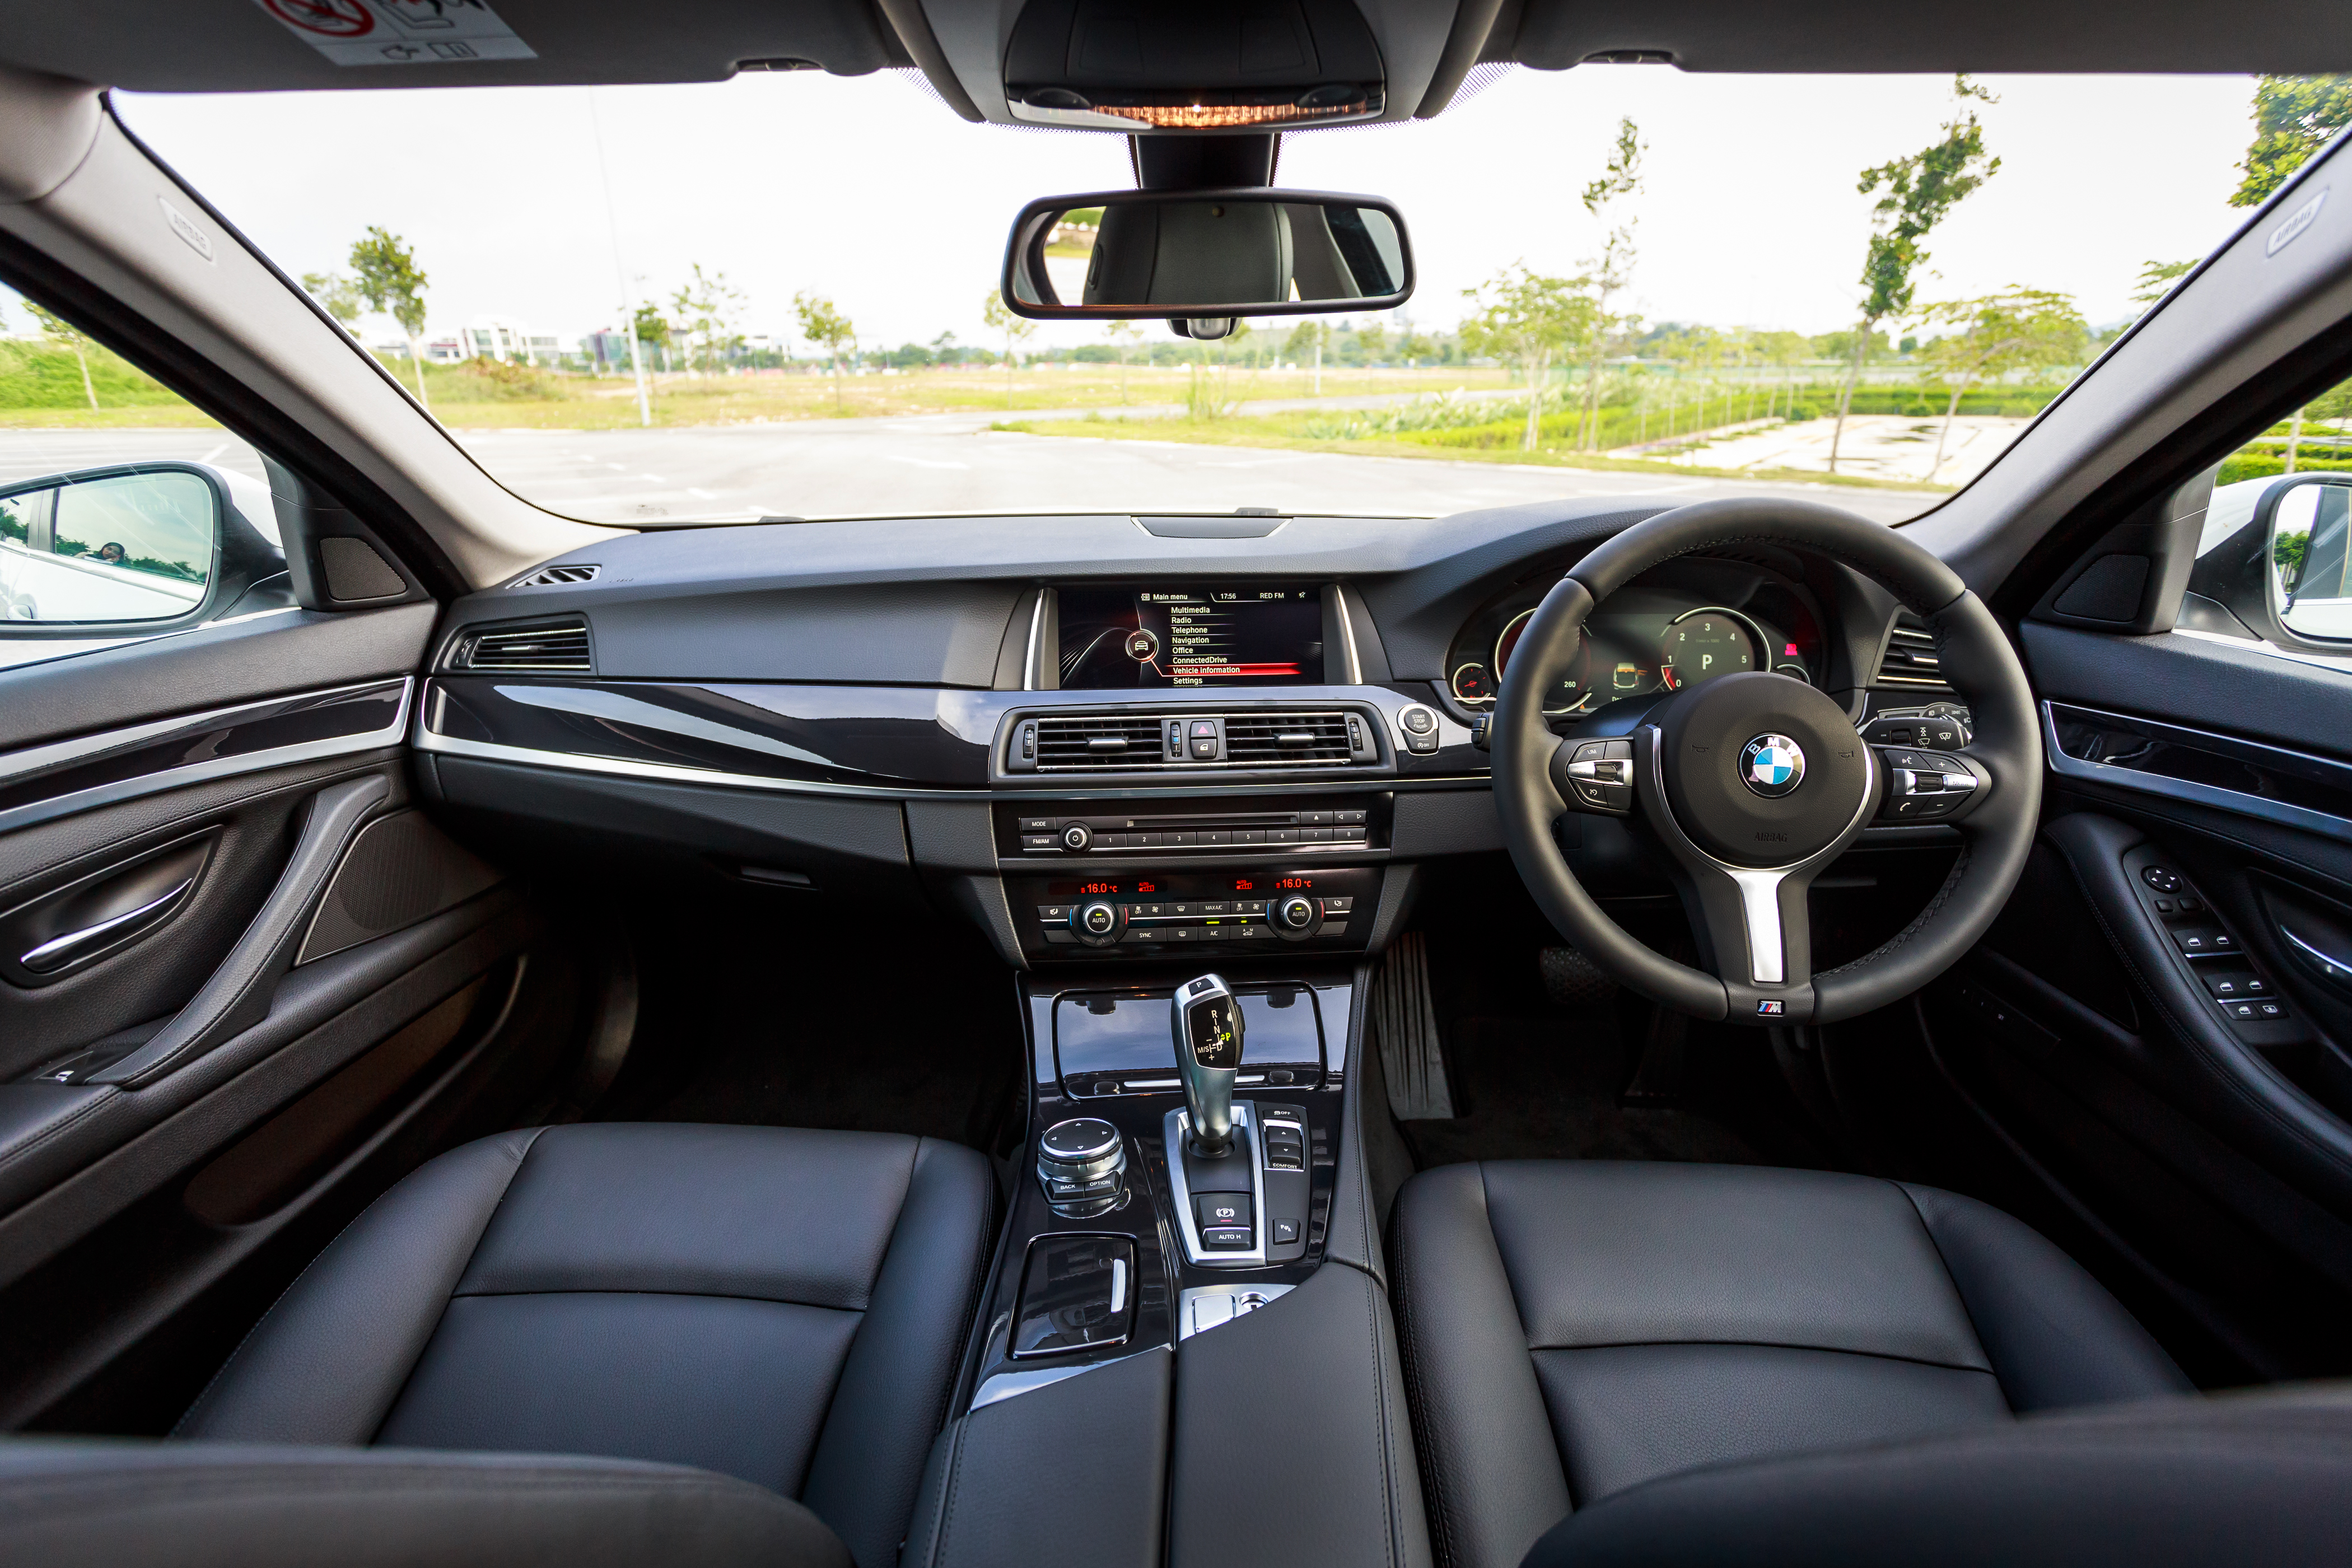 Car interior malaysia - Bmw 520d Sport Introduced In Malaysia 50 Units Image 316429